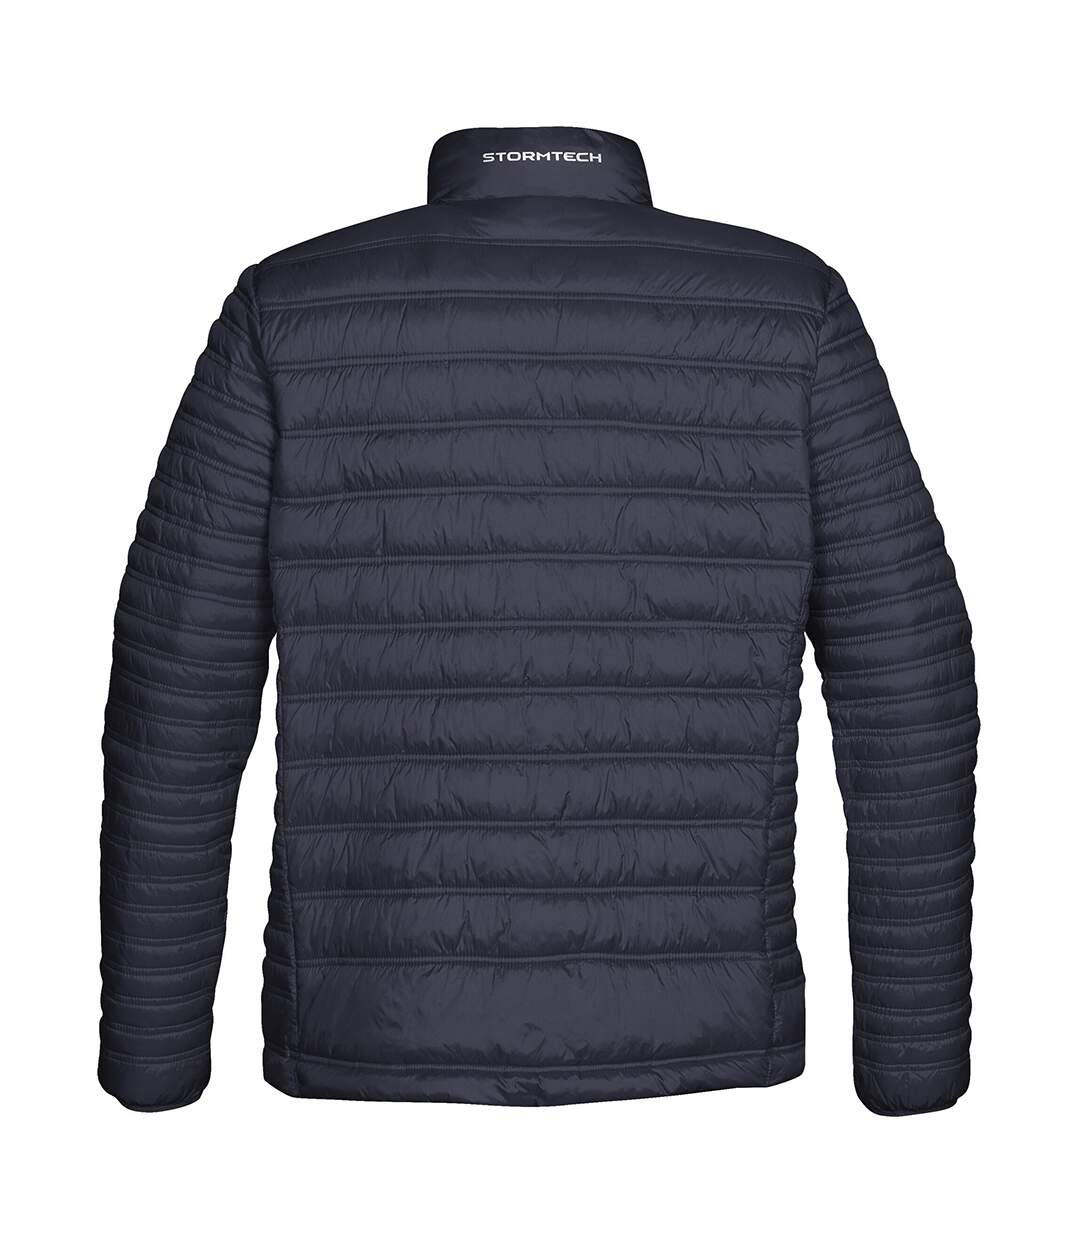 Stormtech Mens Basecamp Thermal Quilted Jacket (Titanium) - UTRW4784